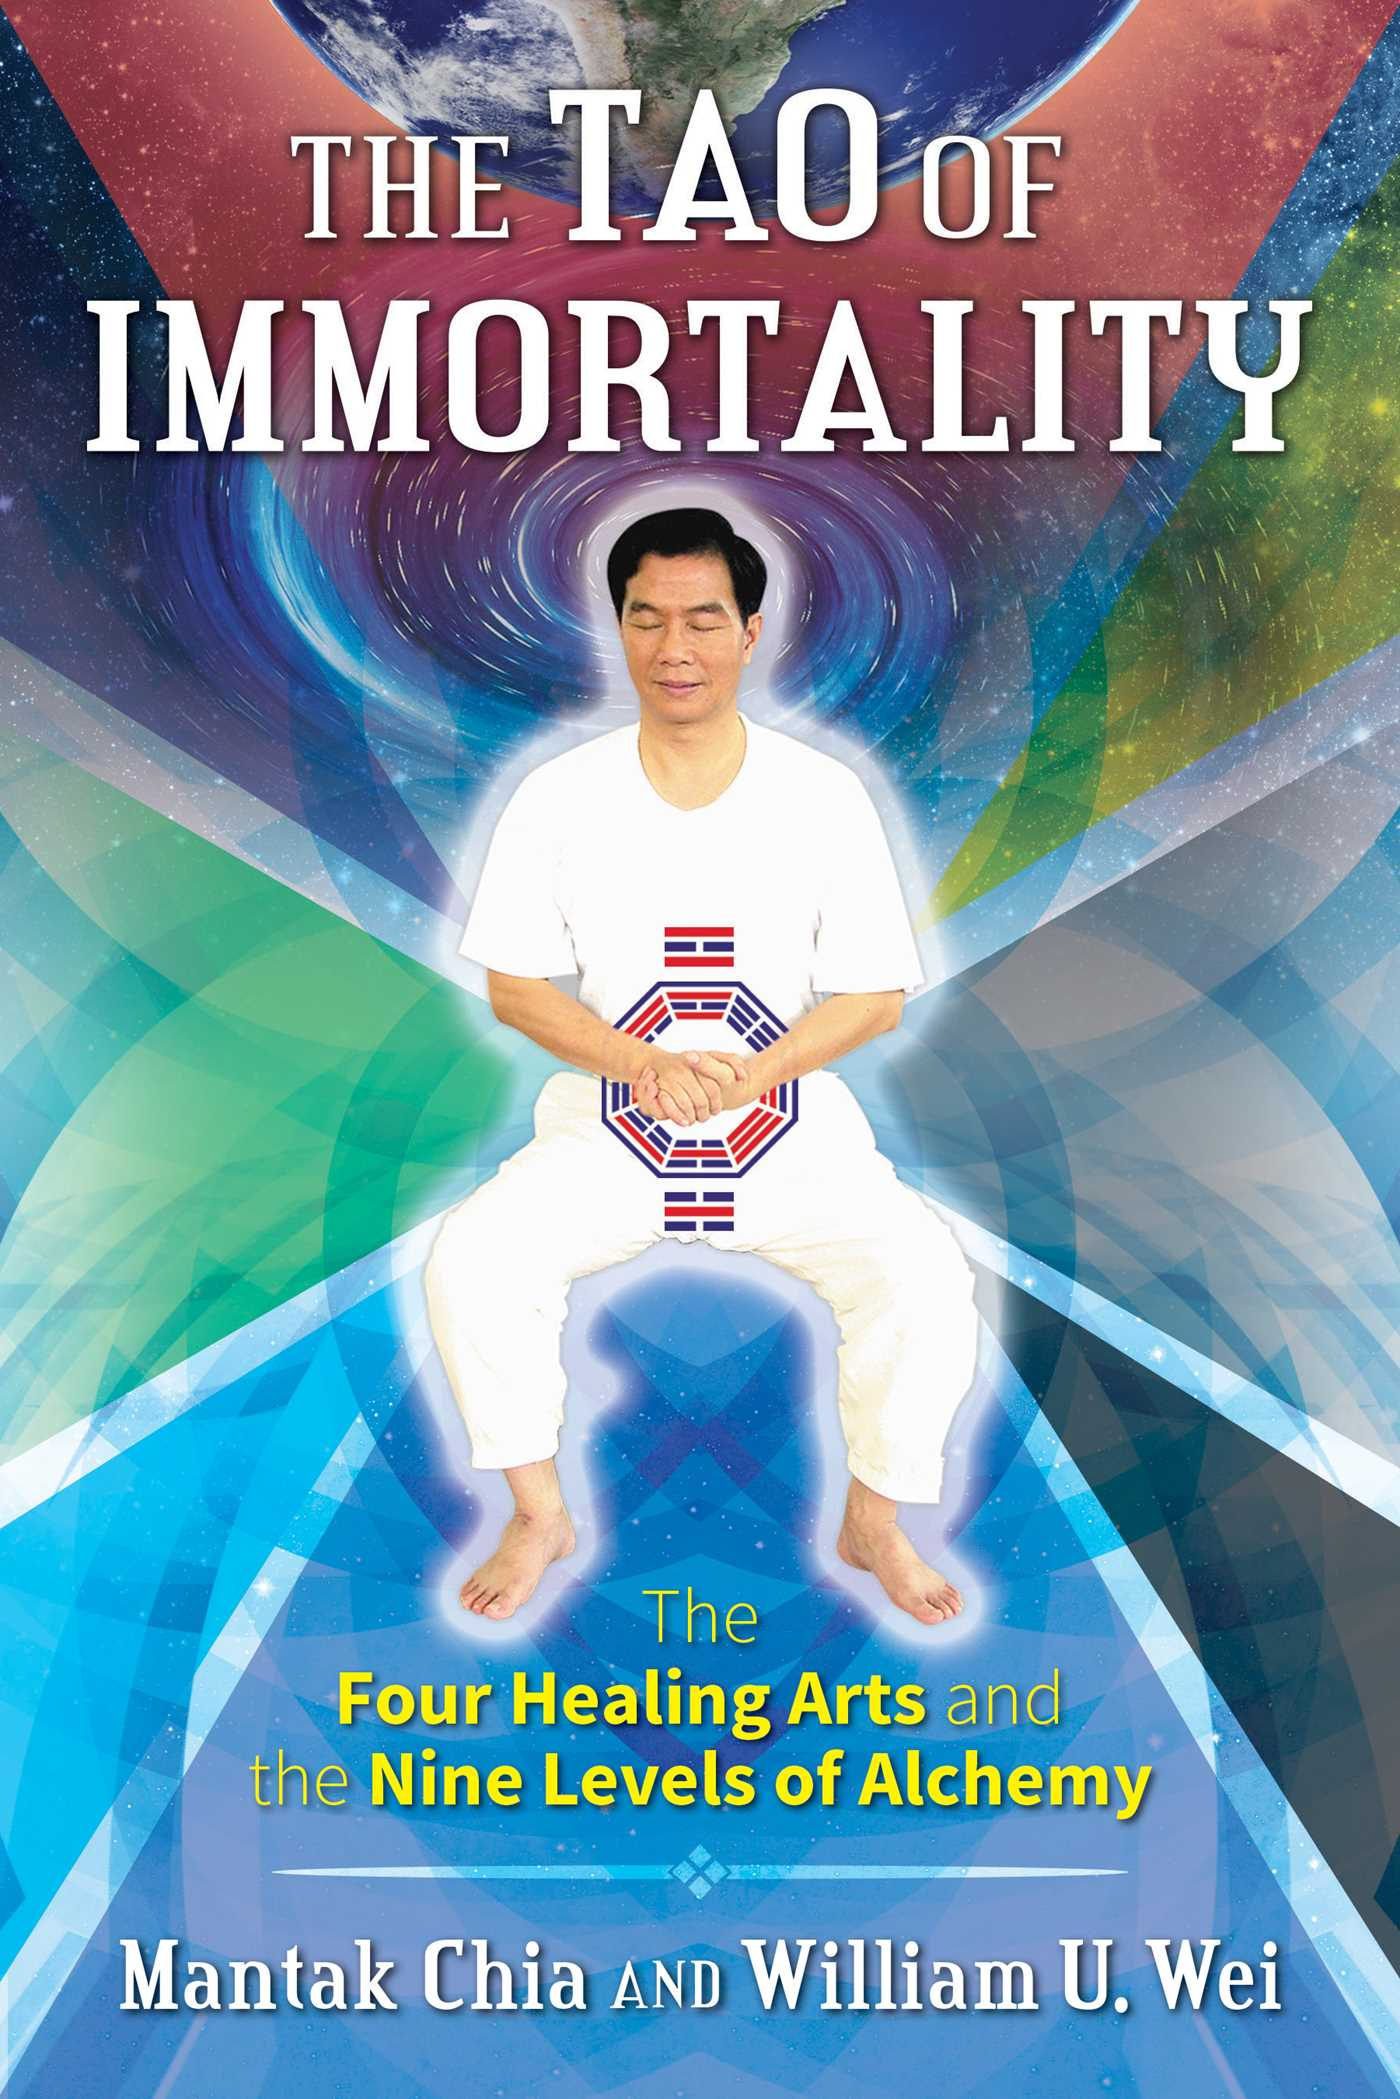 The tao of immortality 9781620556702 hr